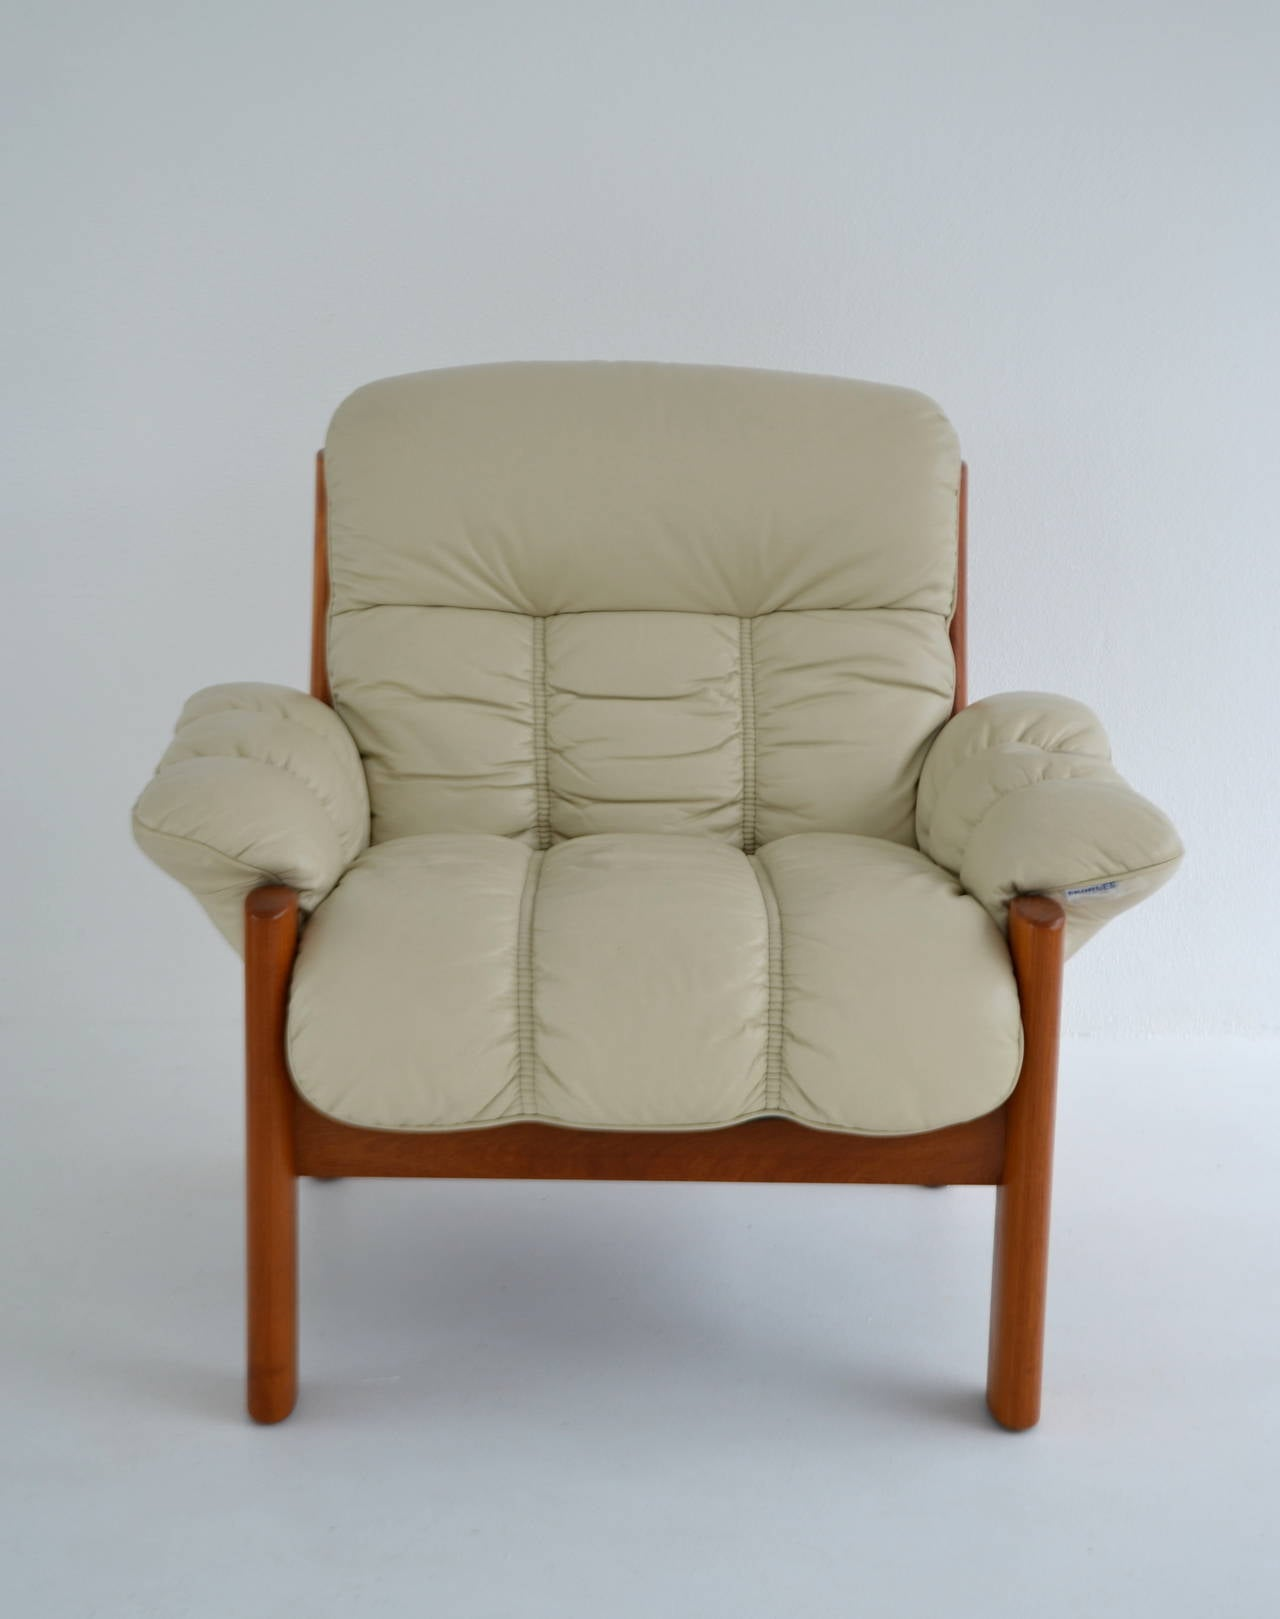 Scandinavian Modern Postmodern Leather And Teak Club Chair By J. E. Ekornes  For Sale